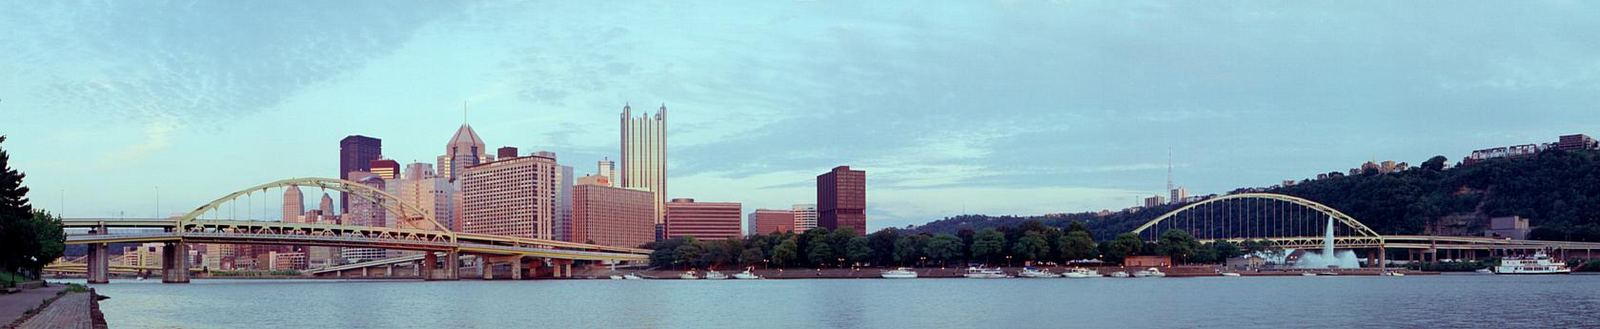 The Fort Duquesne and Fort Pitt Bridges © 2000 John Strait